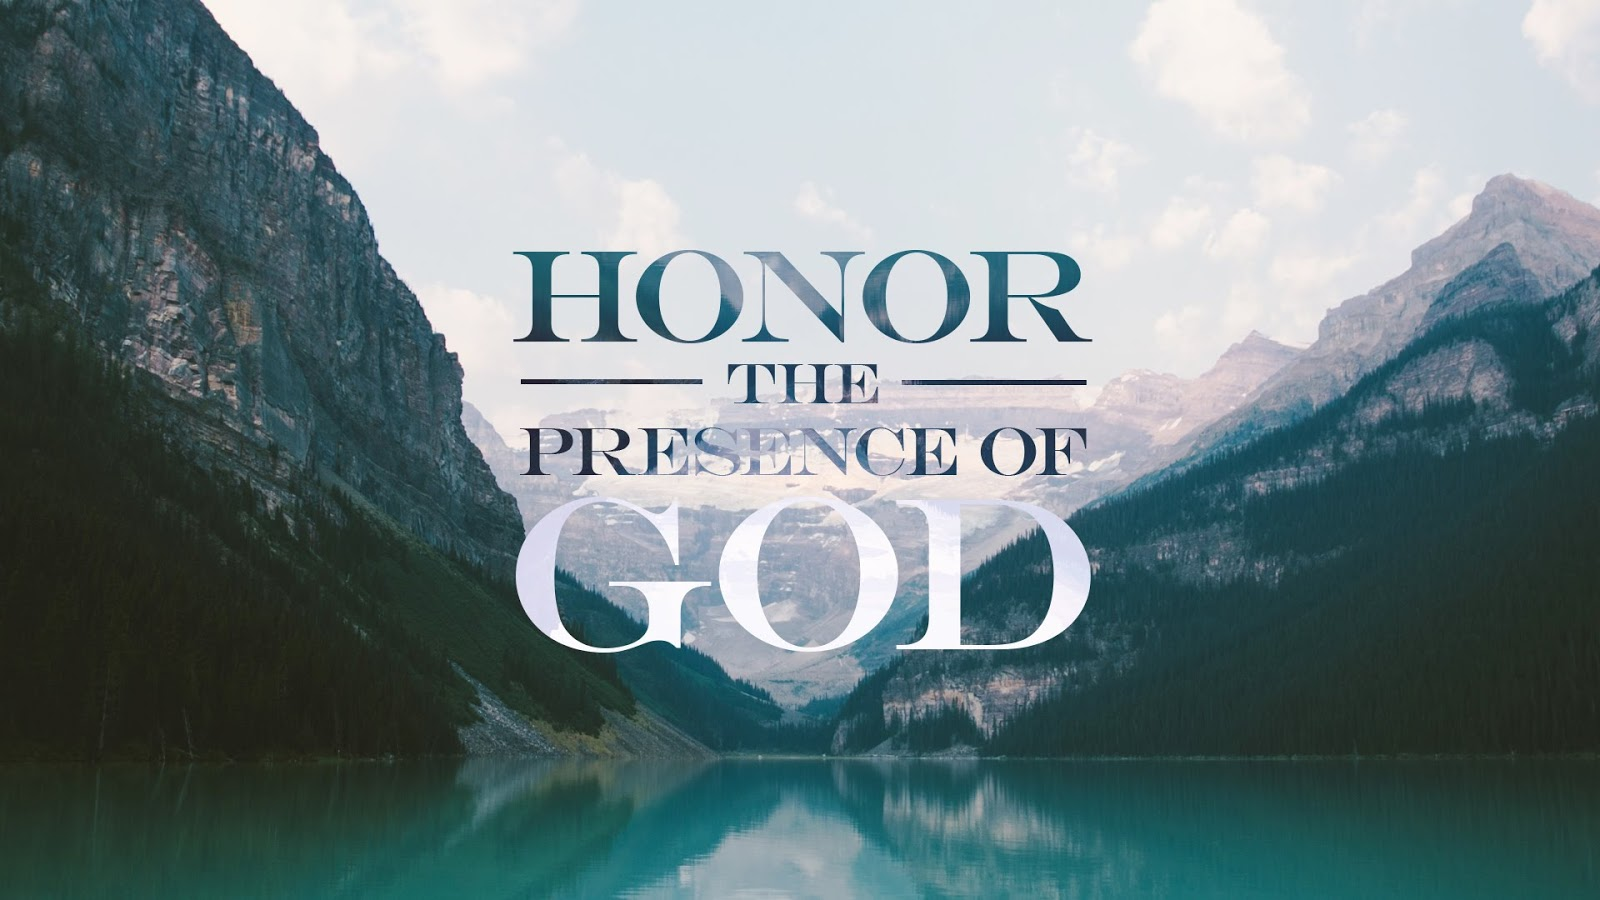 presence of god The presence of god j ryan lister this book explores the importance of god's presence in the bible and how it relates to his plan for the world, helping readers understand what we really.